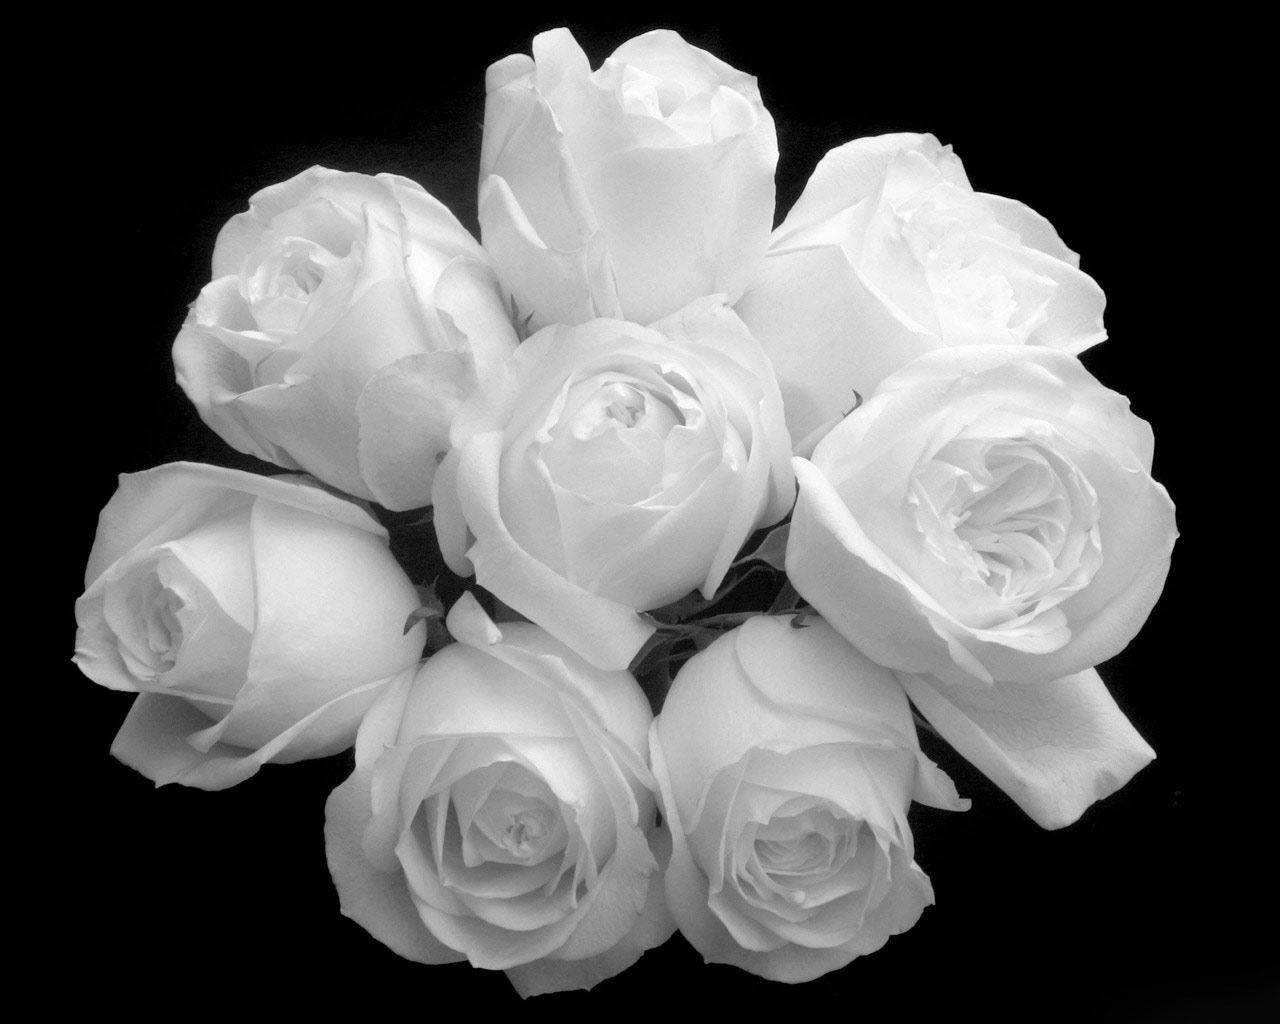 Desktop Wallpapers Nature Fresh Beautiful Bouquet White Roses